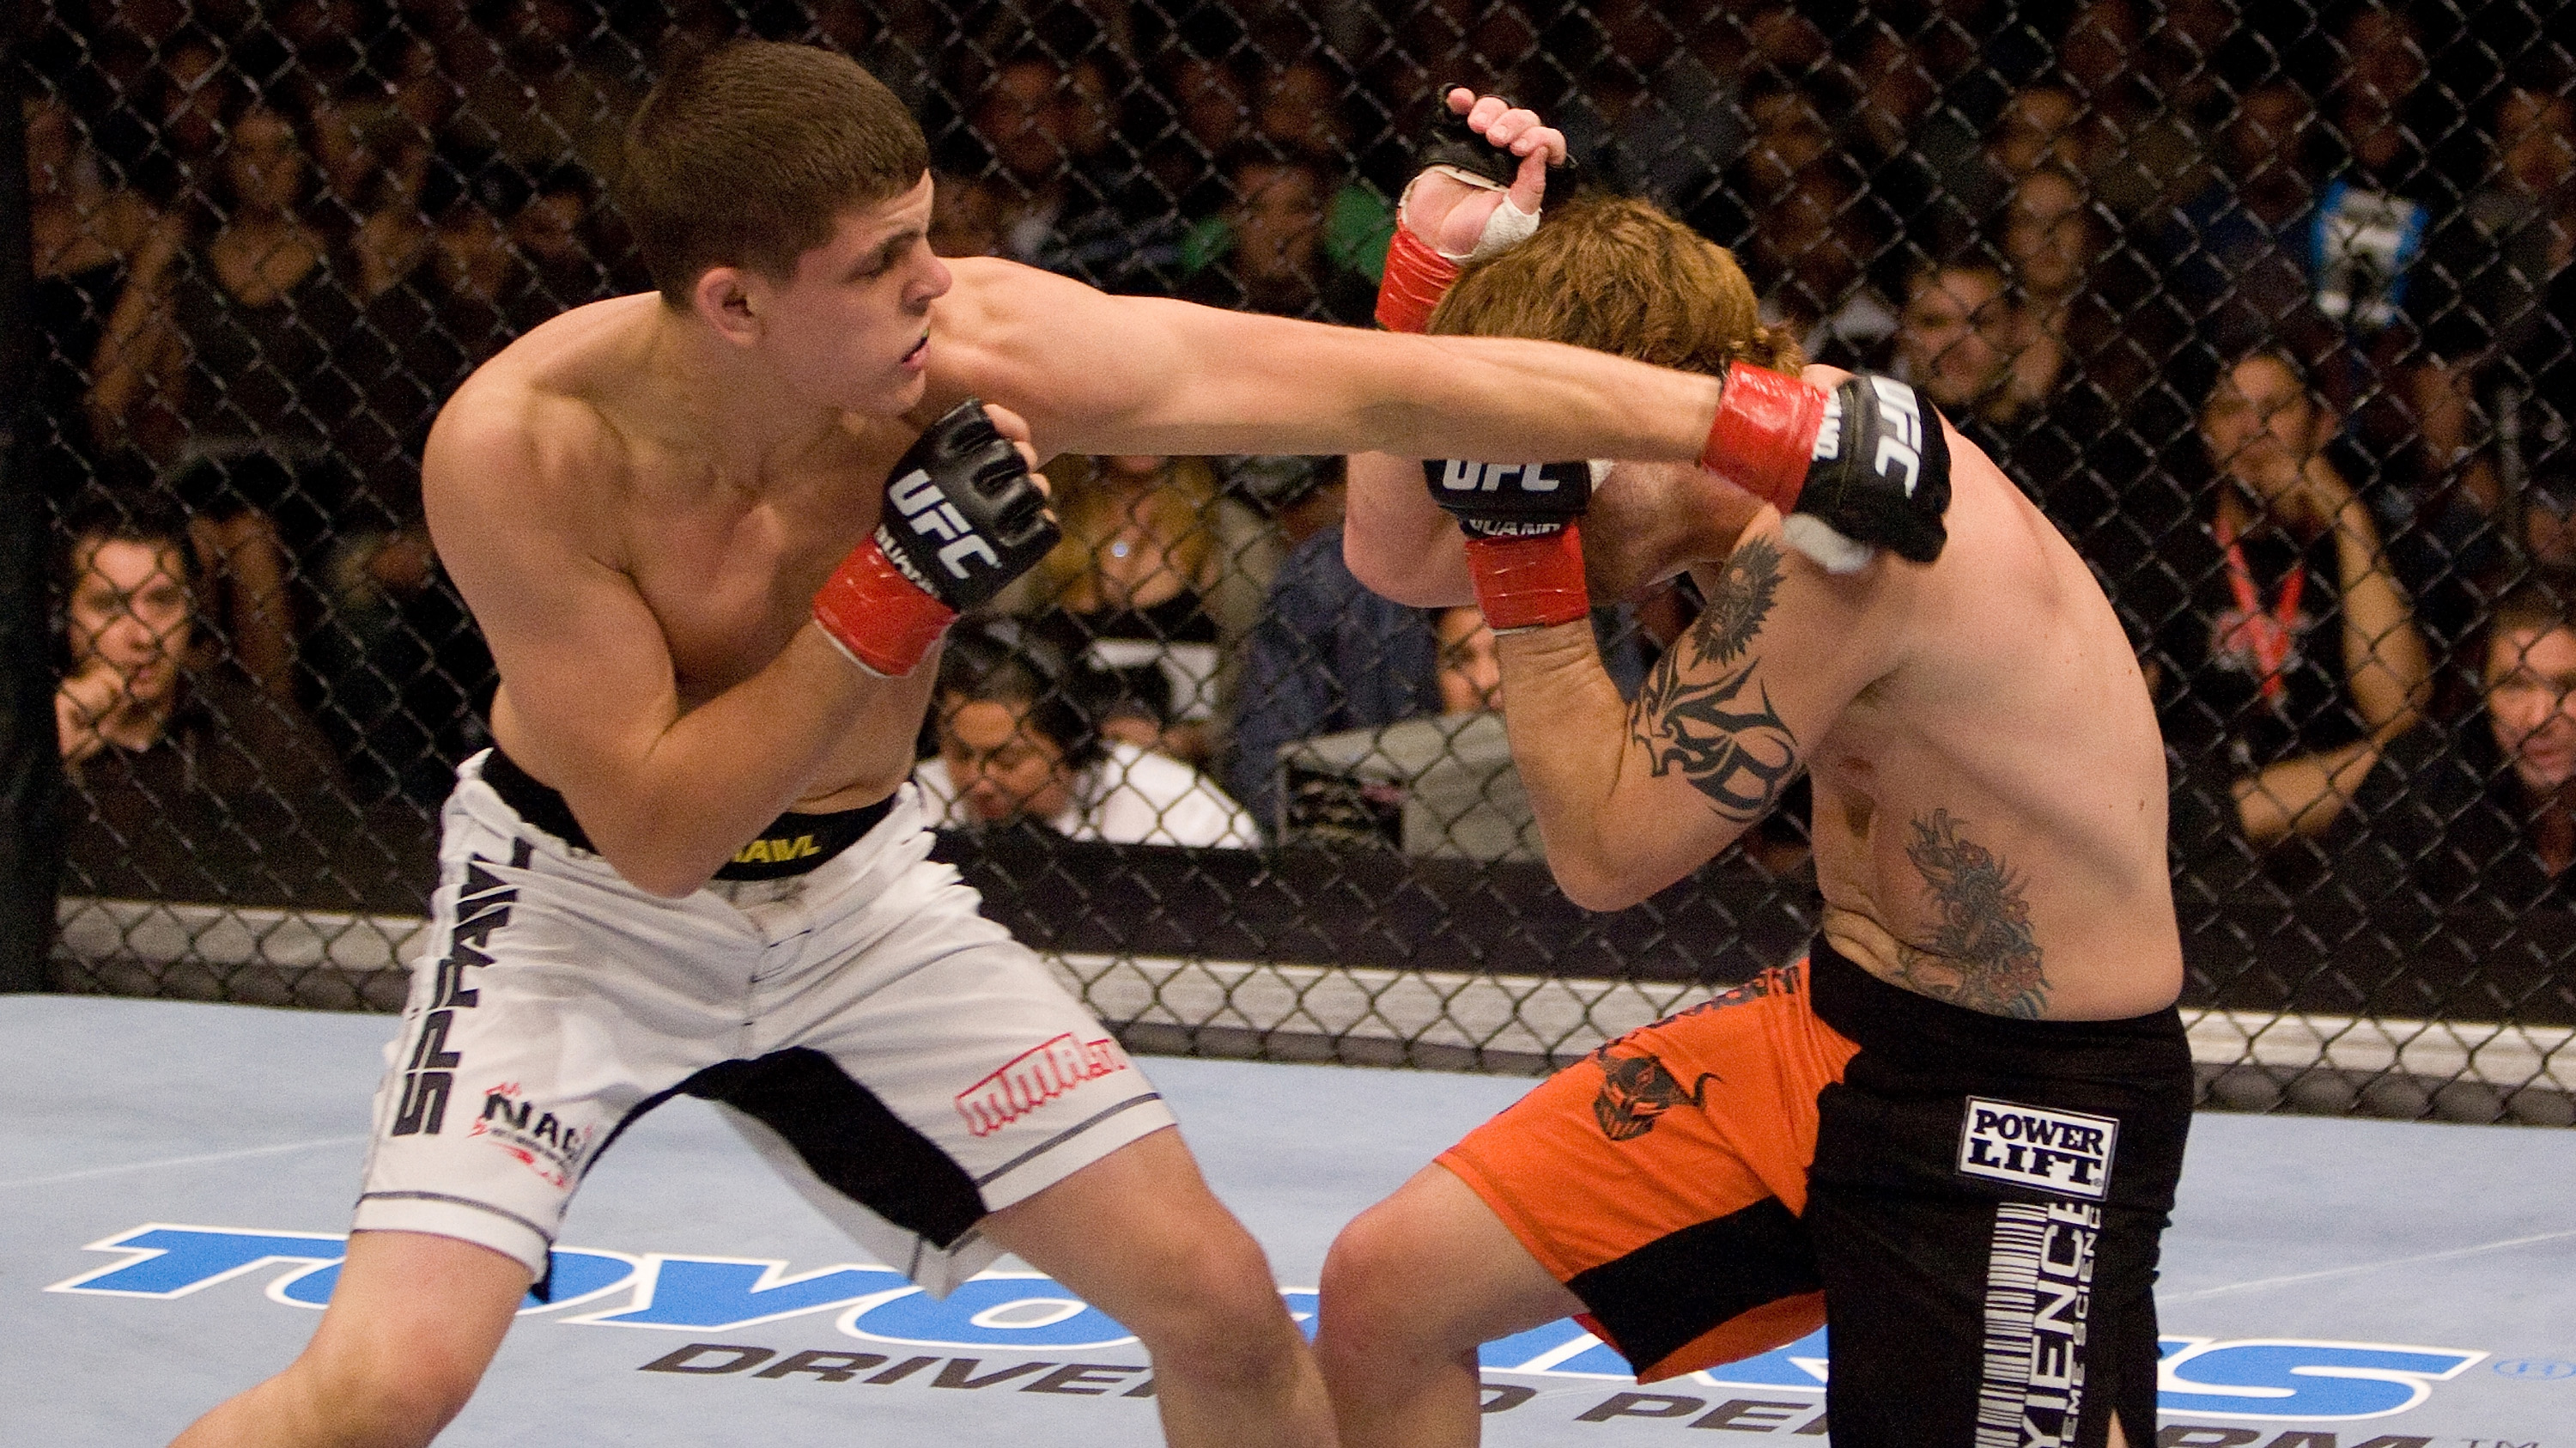 It took less than one minute for Lauzon to celebrate at UFC 63 (Photo by Josh Hedges/Zuffa LLC/Zuffa LLC via Getty Images)